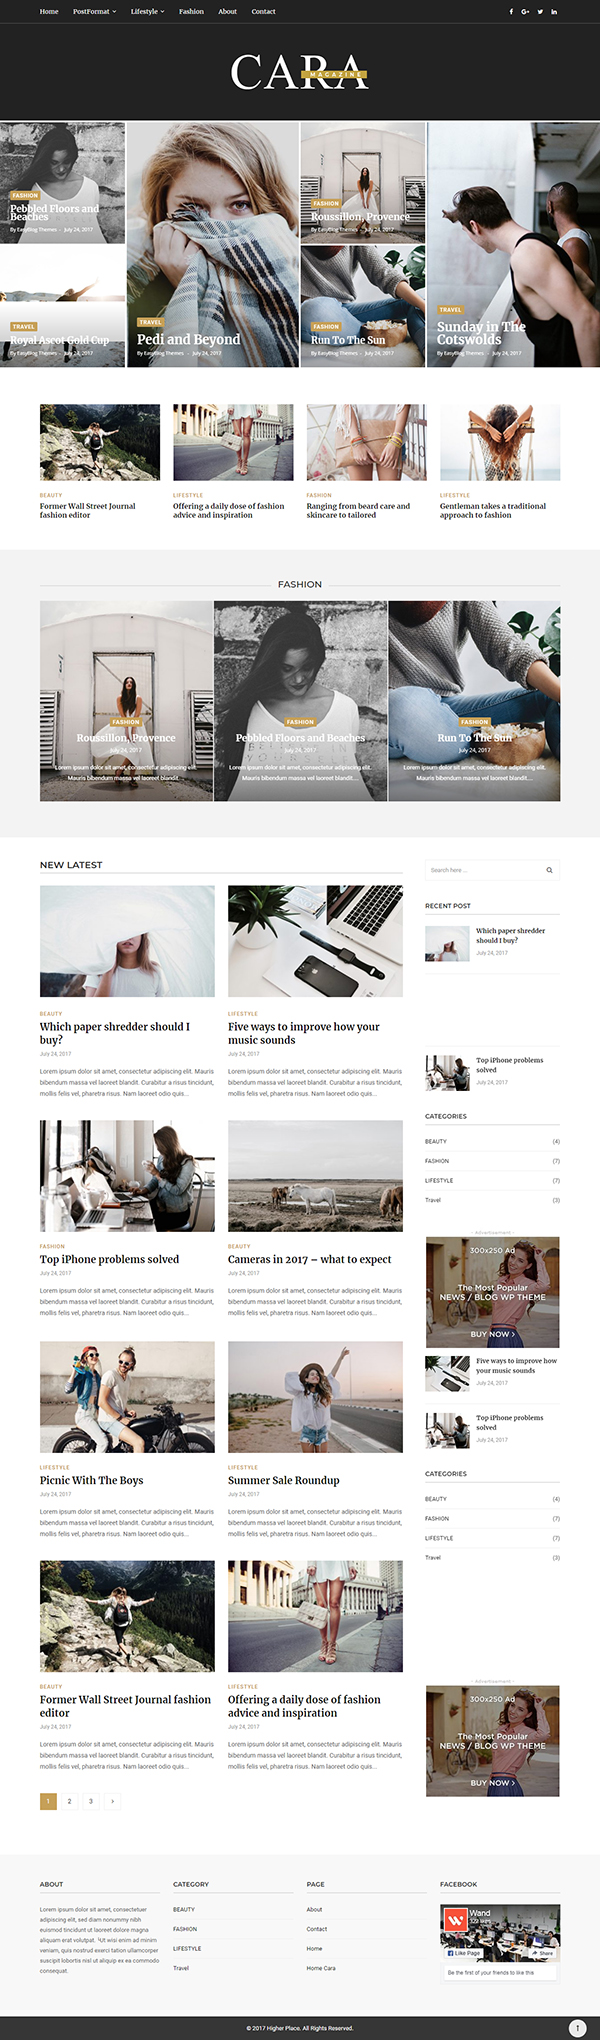 Cara - Magazine WordPress Theme